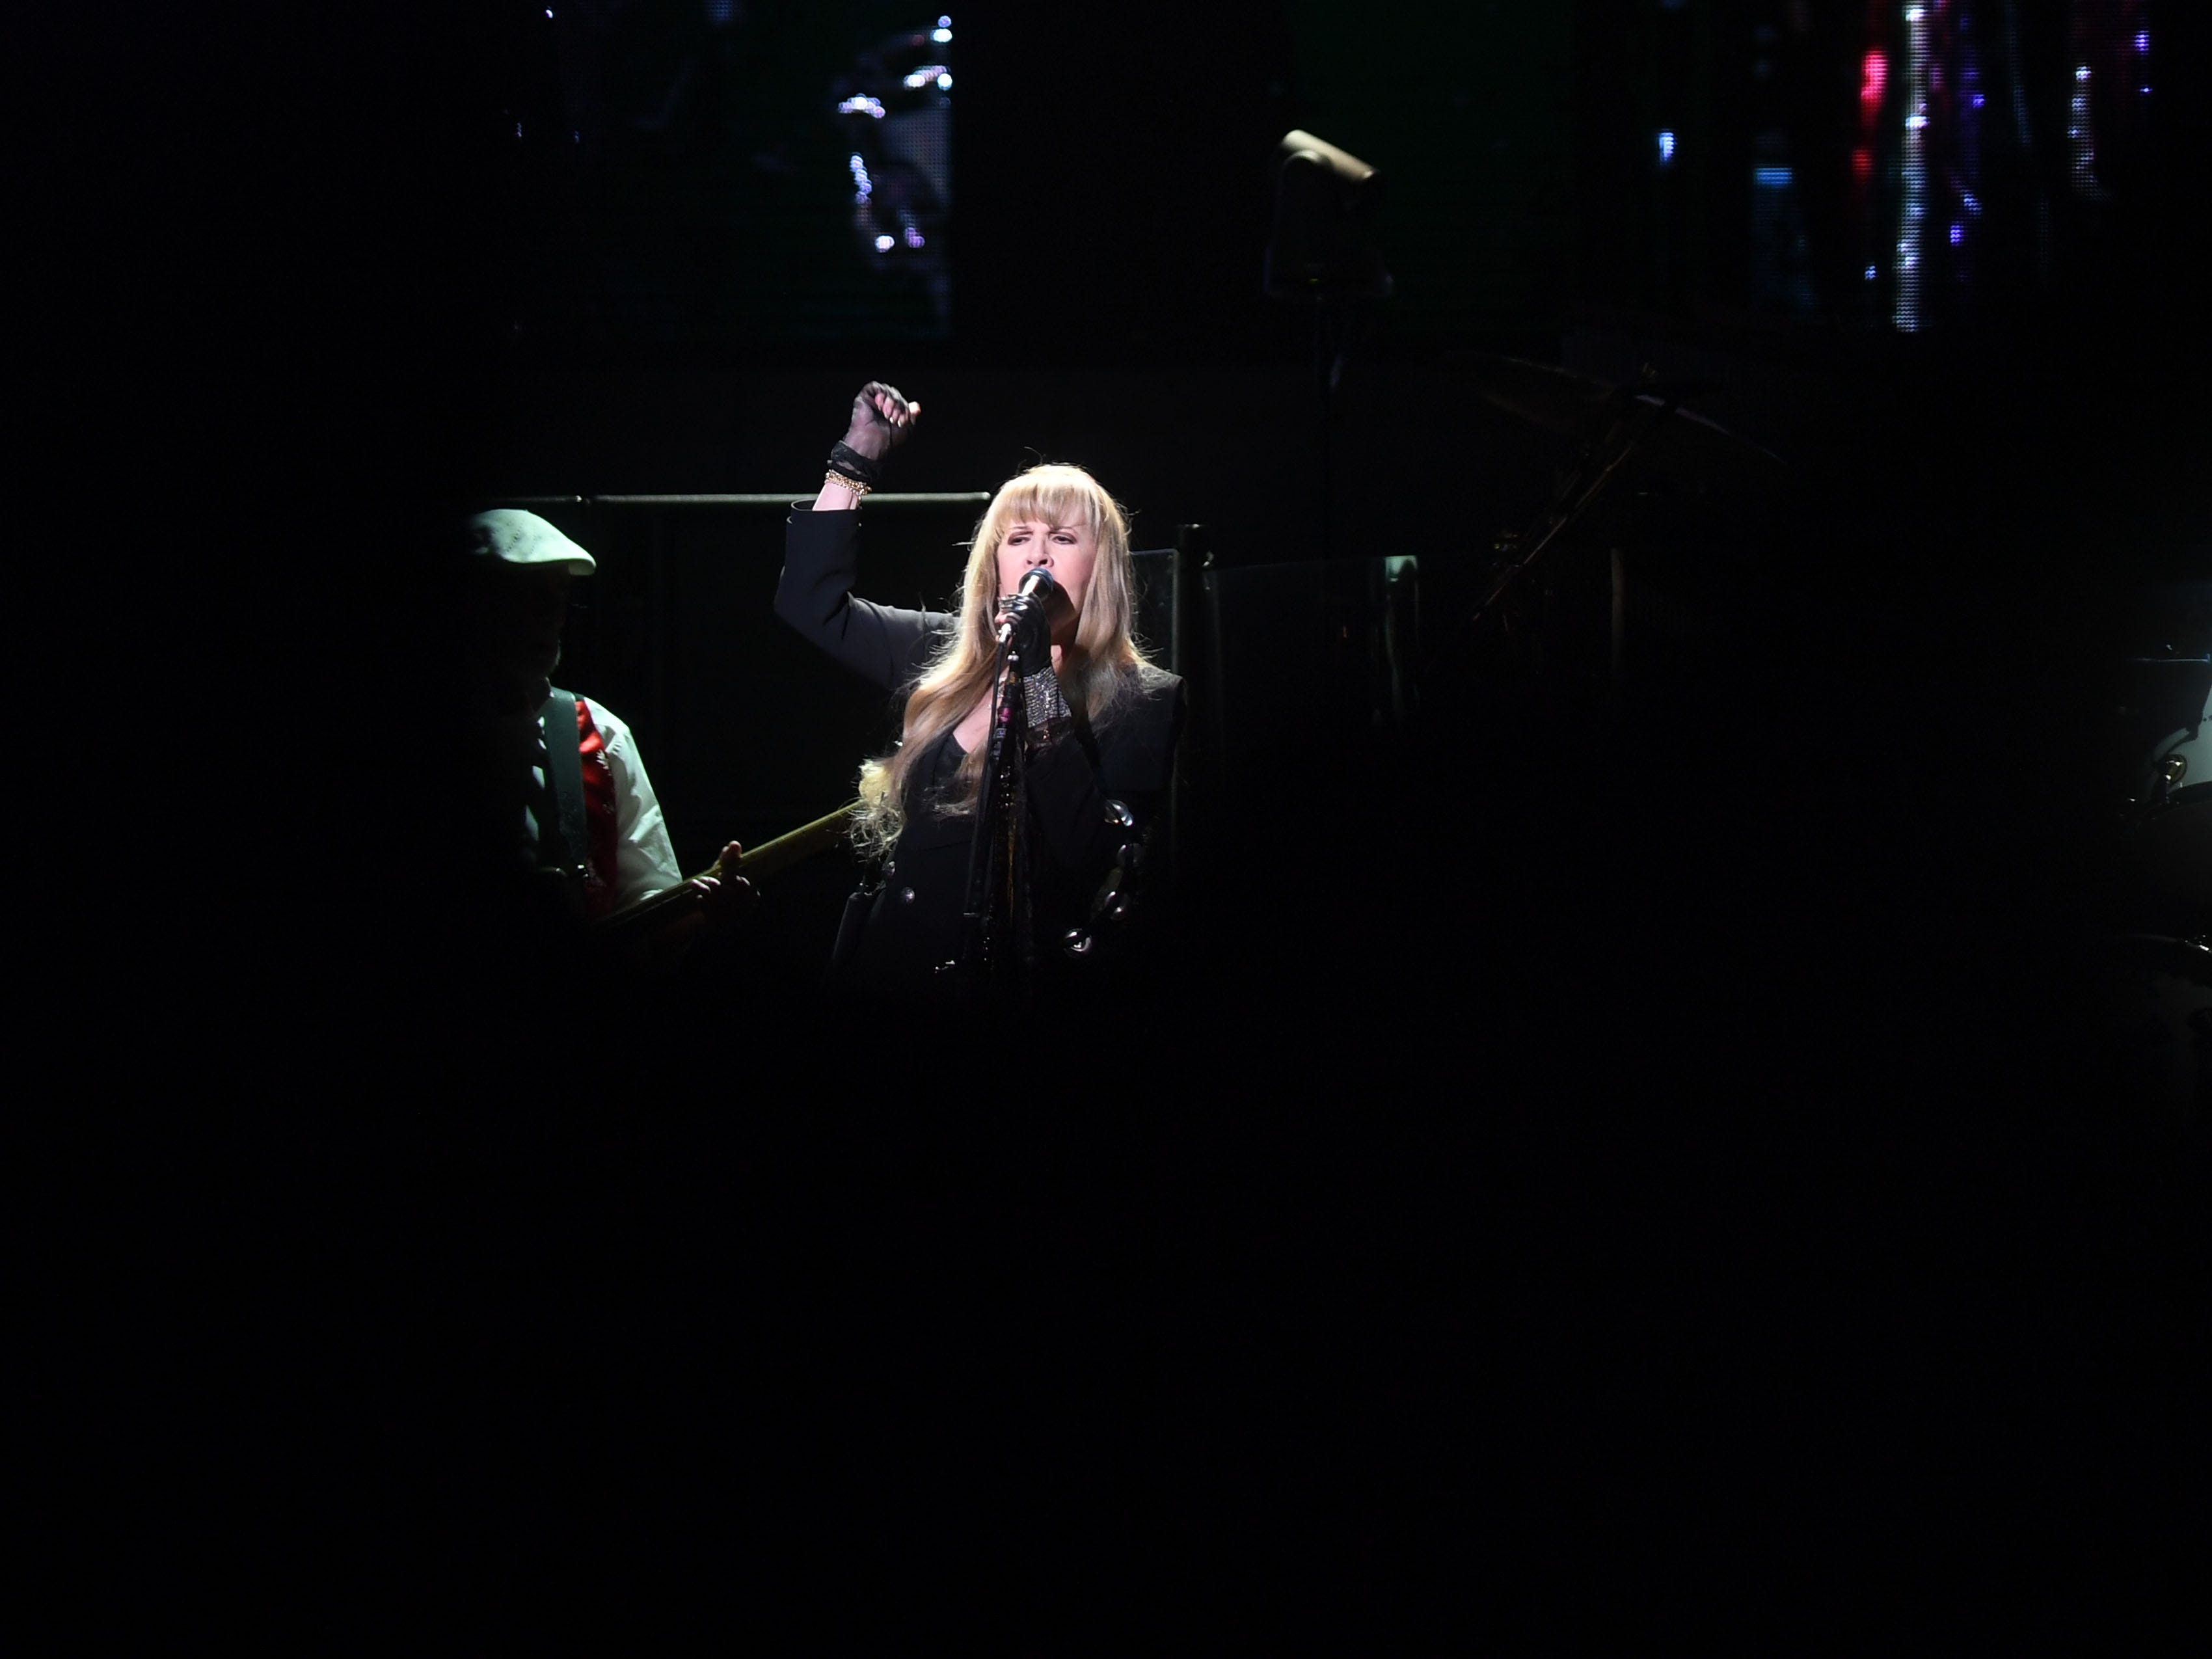 Fleetwood Mac's Stevie Nicks performs at the Denny Sanford Premier Center Saturday, Feb. 2, in Sioux Falls. The new lineup included Mick Fleetwood, John McVie, Stevie Nicks, Christine McVie, Mike Campbell and Neil Finn.